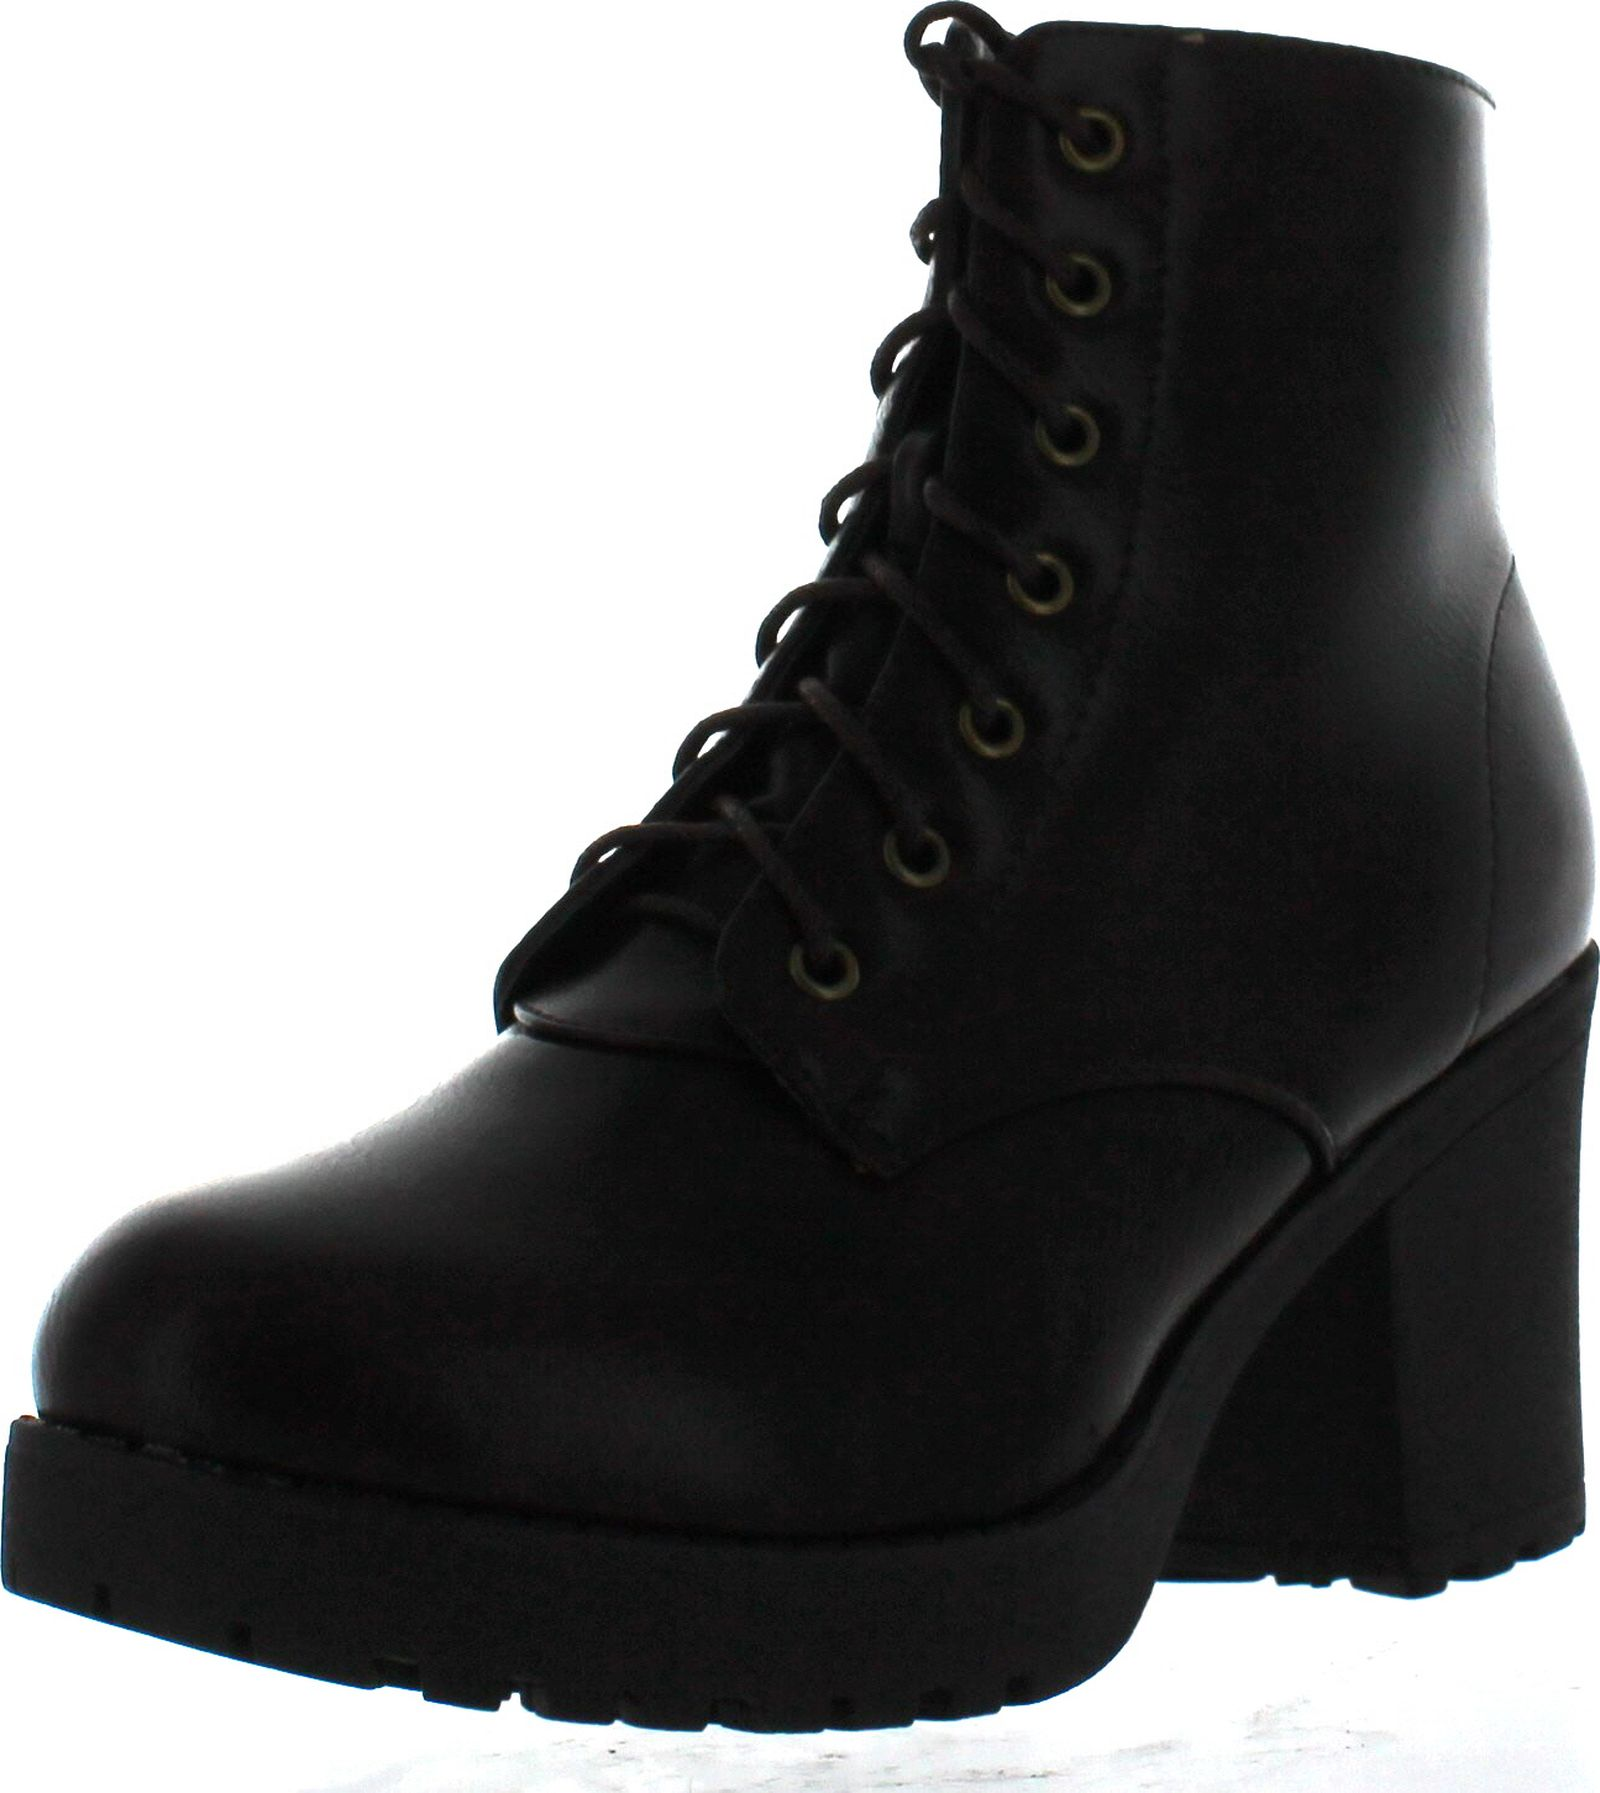 d1a4617e2cee Refresh Club-02 Women s Lace Up Side Zip Platform Chunky Combat Ankle  Booties - ShoeCenter.com